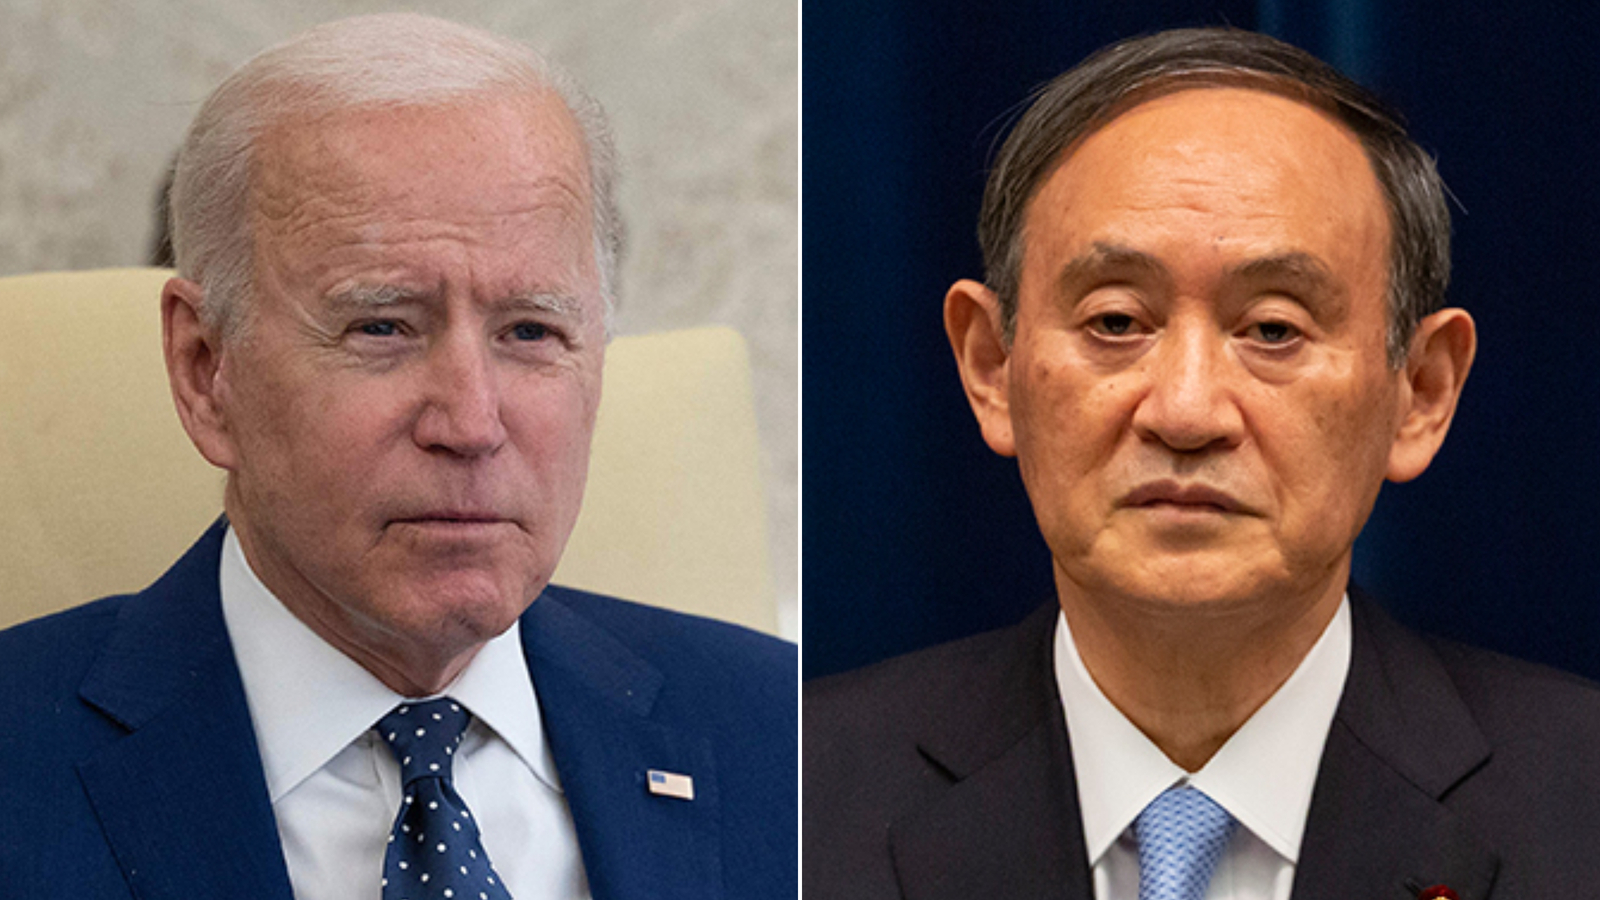 Biden to use meeting with Japan's prime minister to send 'clear signal' to China